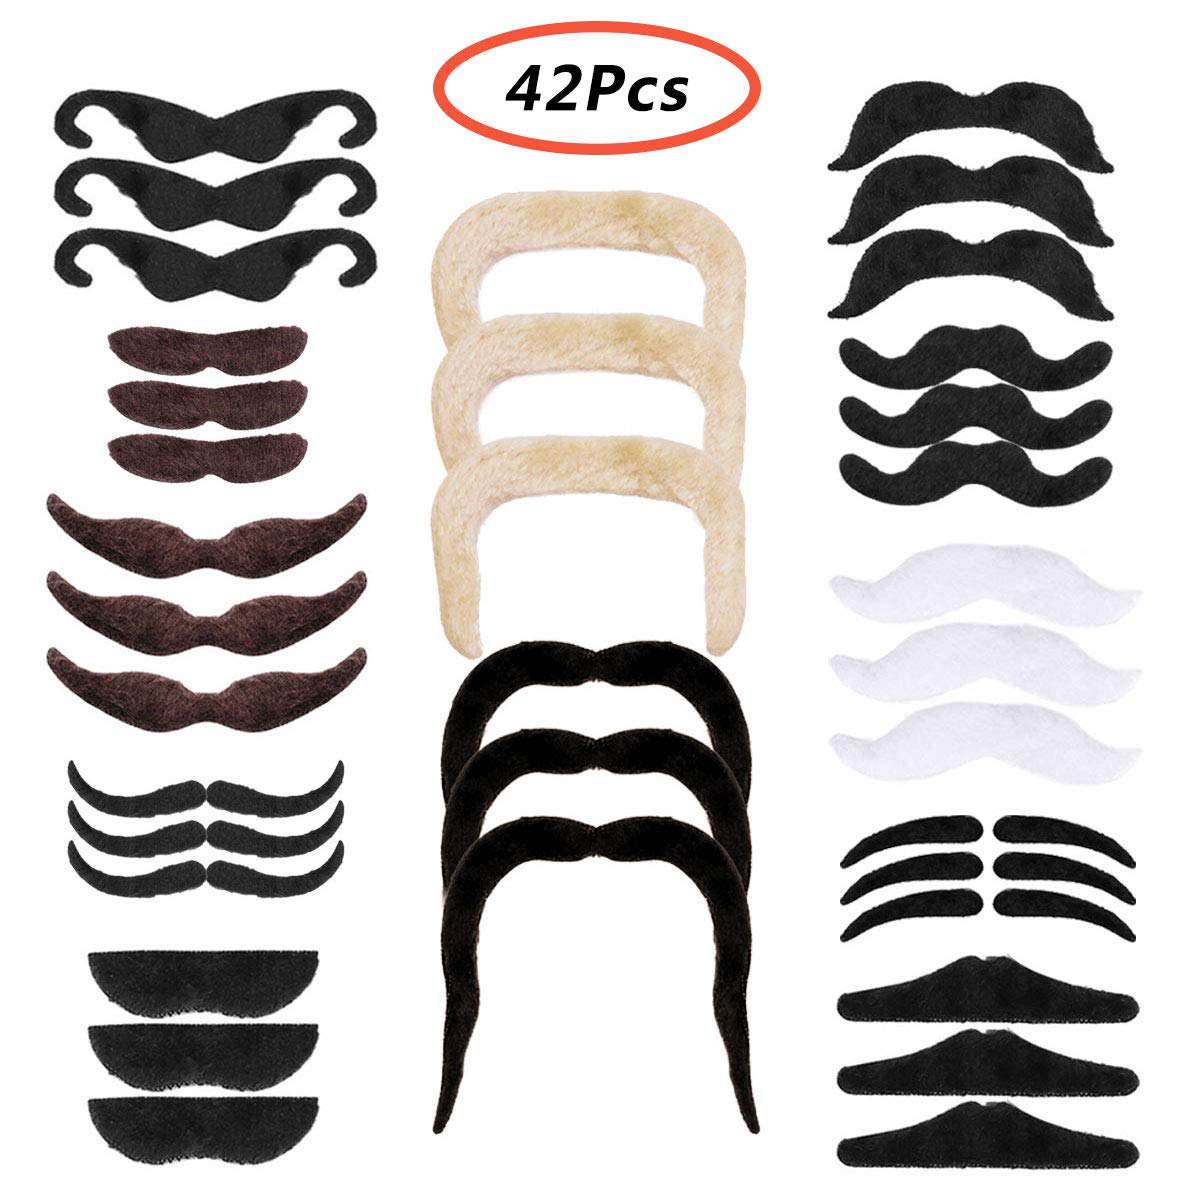 CHICTRY Novelty Fake Mustaches Self Adhesive Fake Beards Decorations for Fiesta Masquerade Cinco de Mayo Party Favors Supplies 42 Pcs One Size